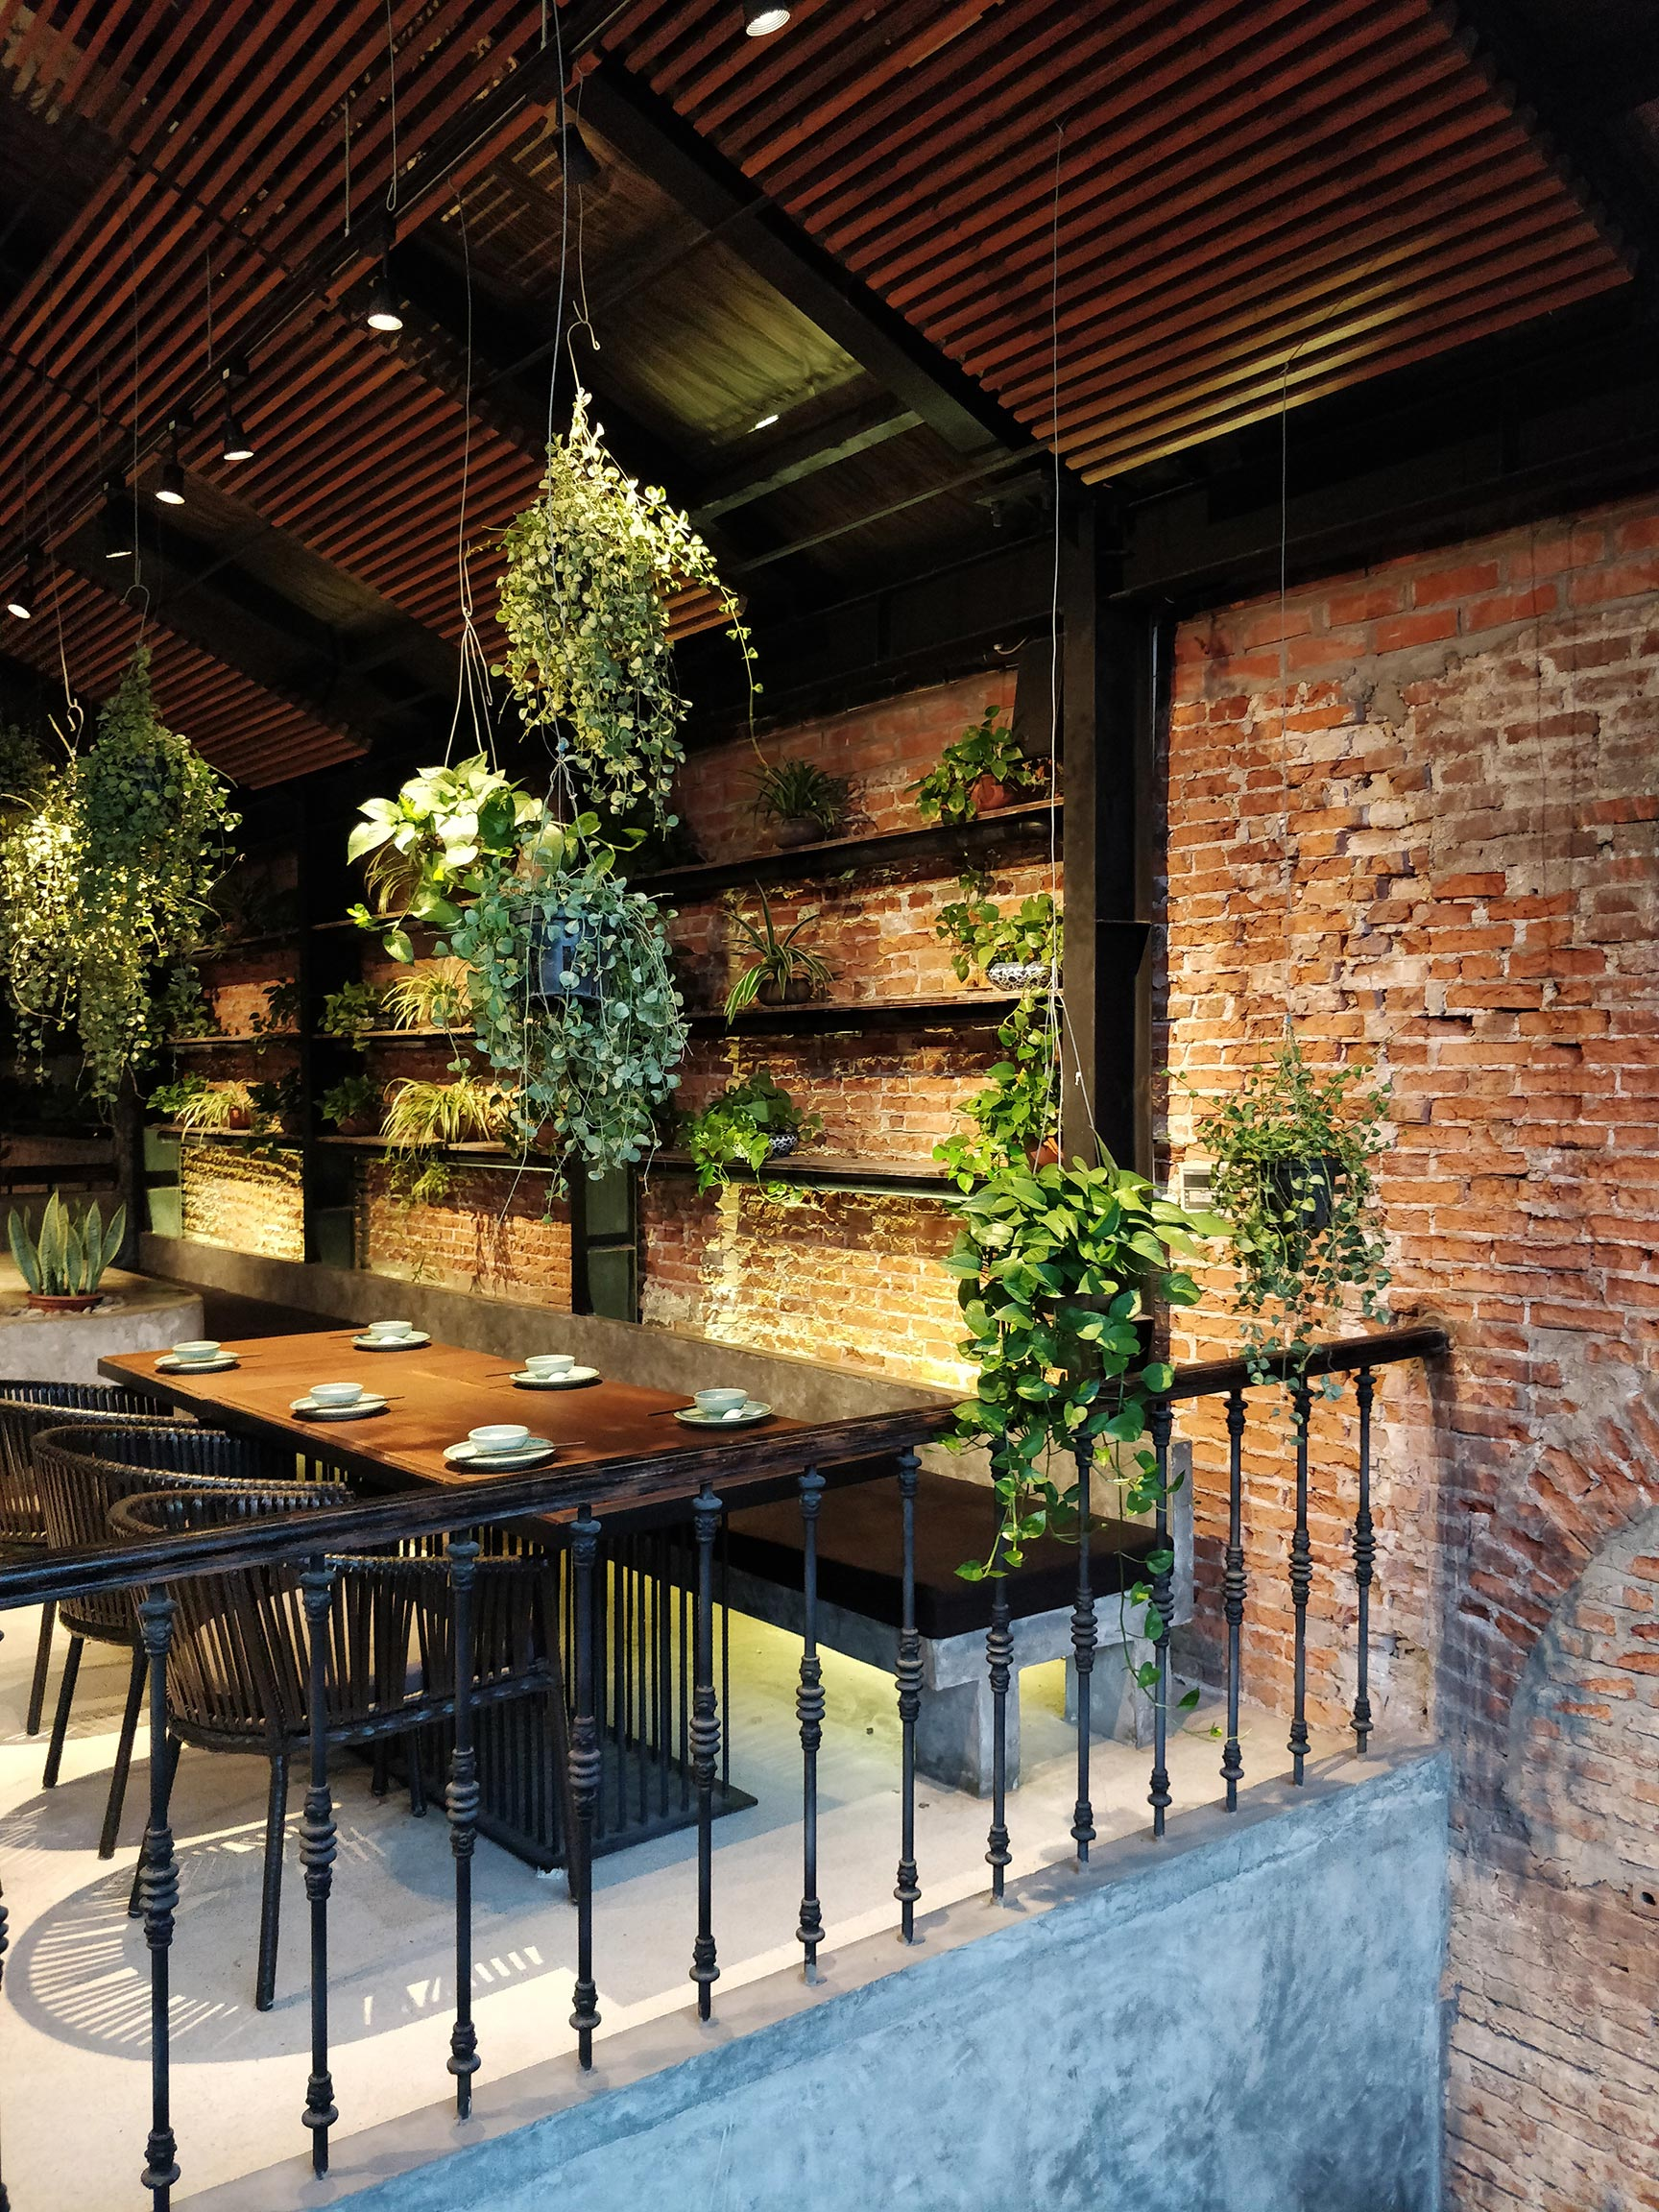 Industrial interior softened with plants